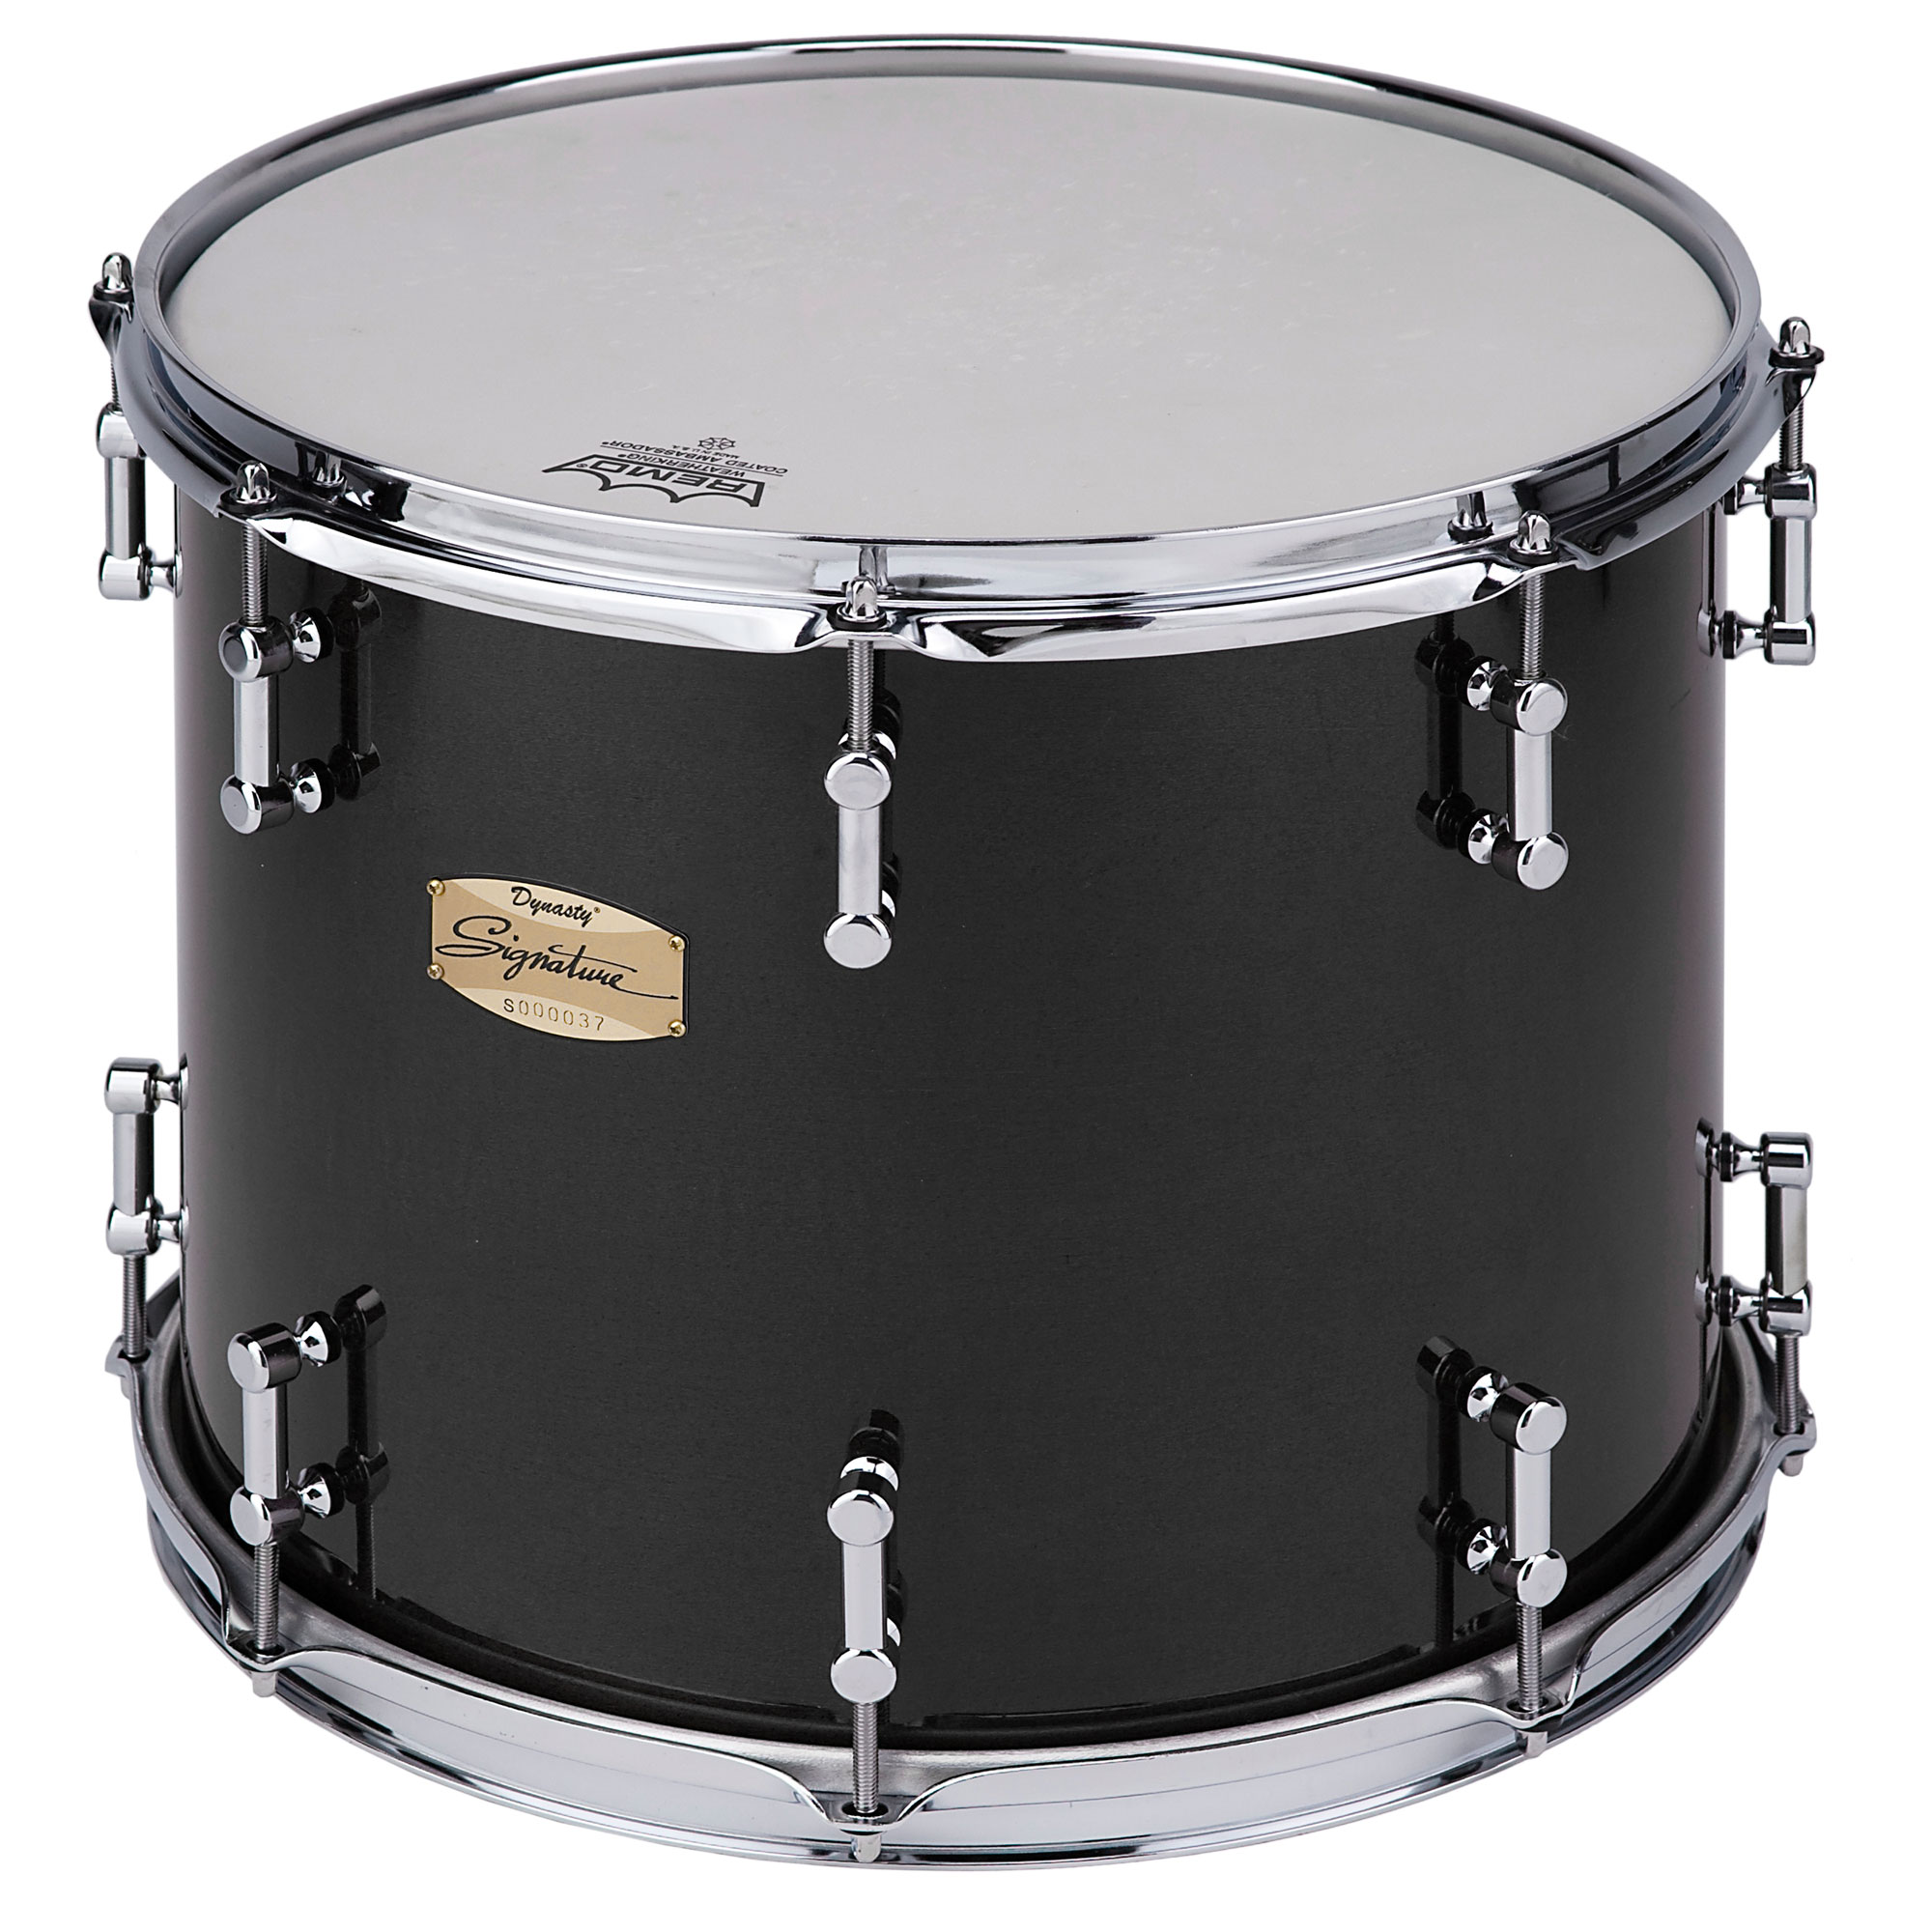 Tom Tom Drum ~ Dynasty quot signature professional double headed